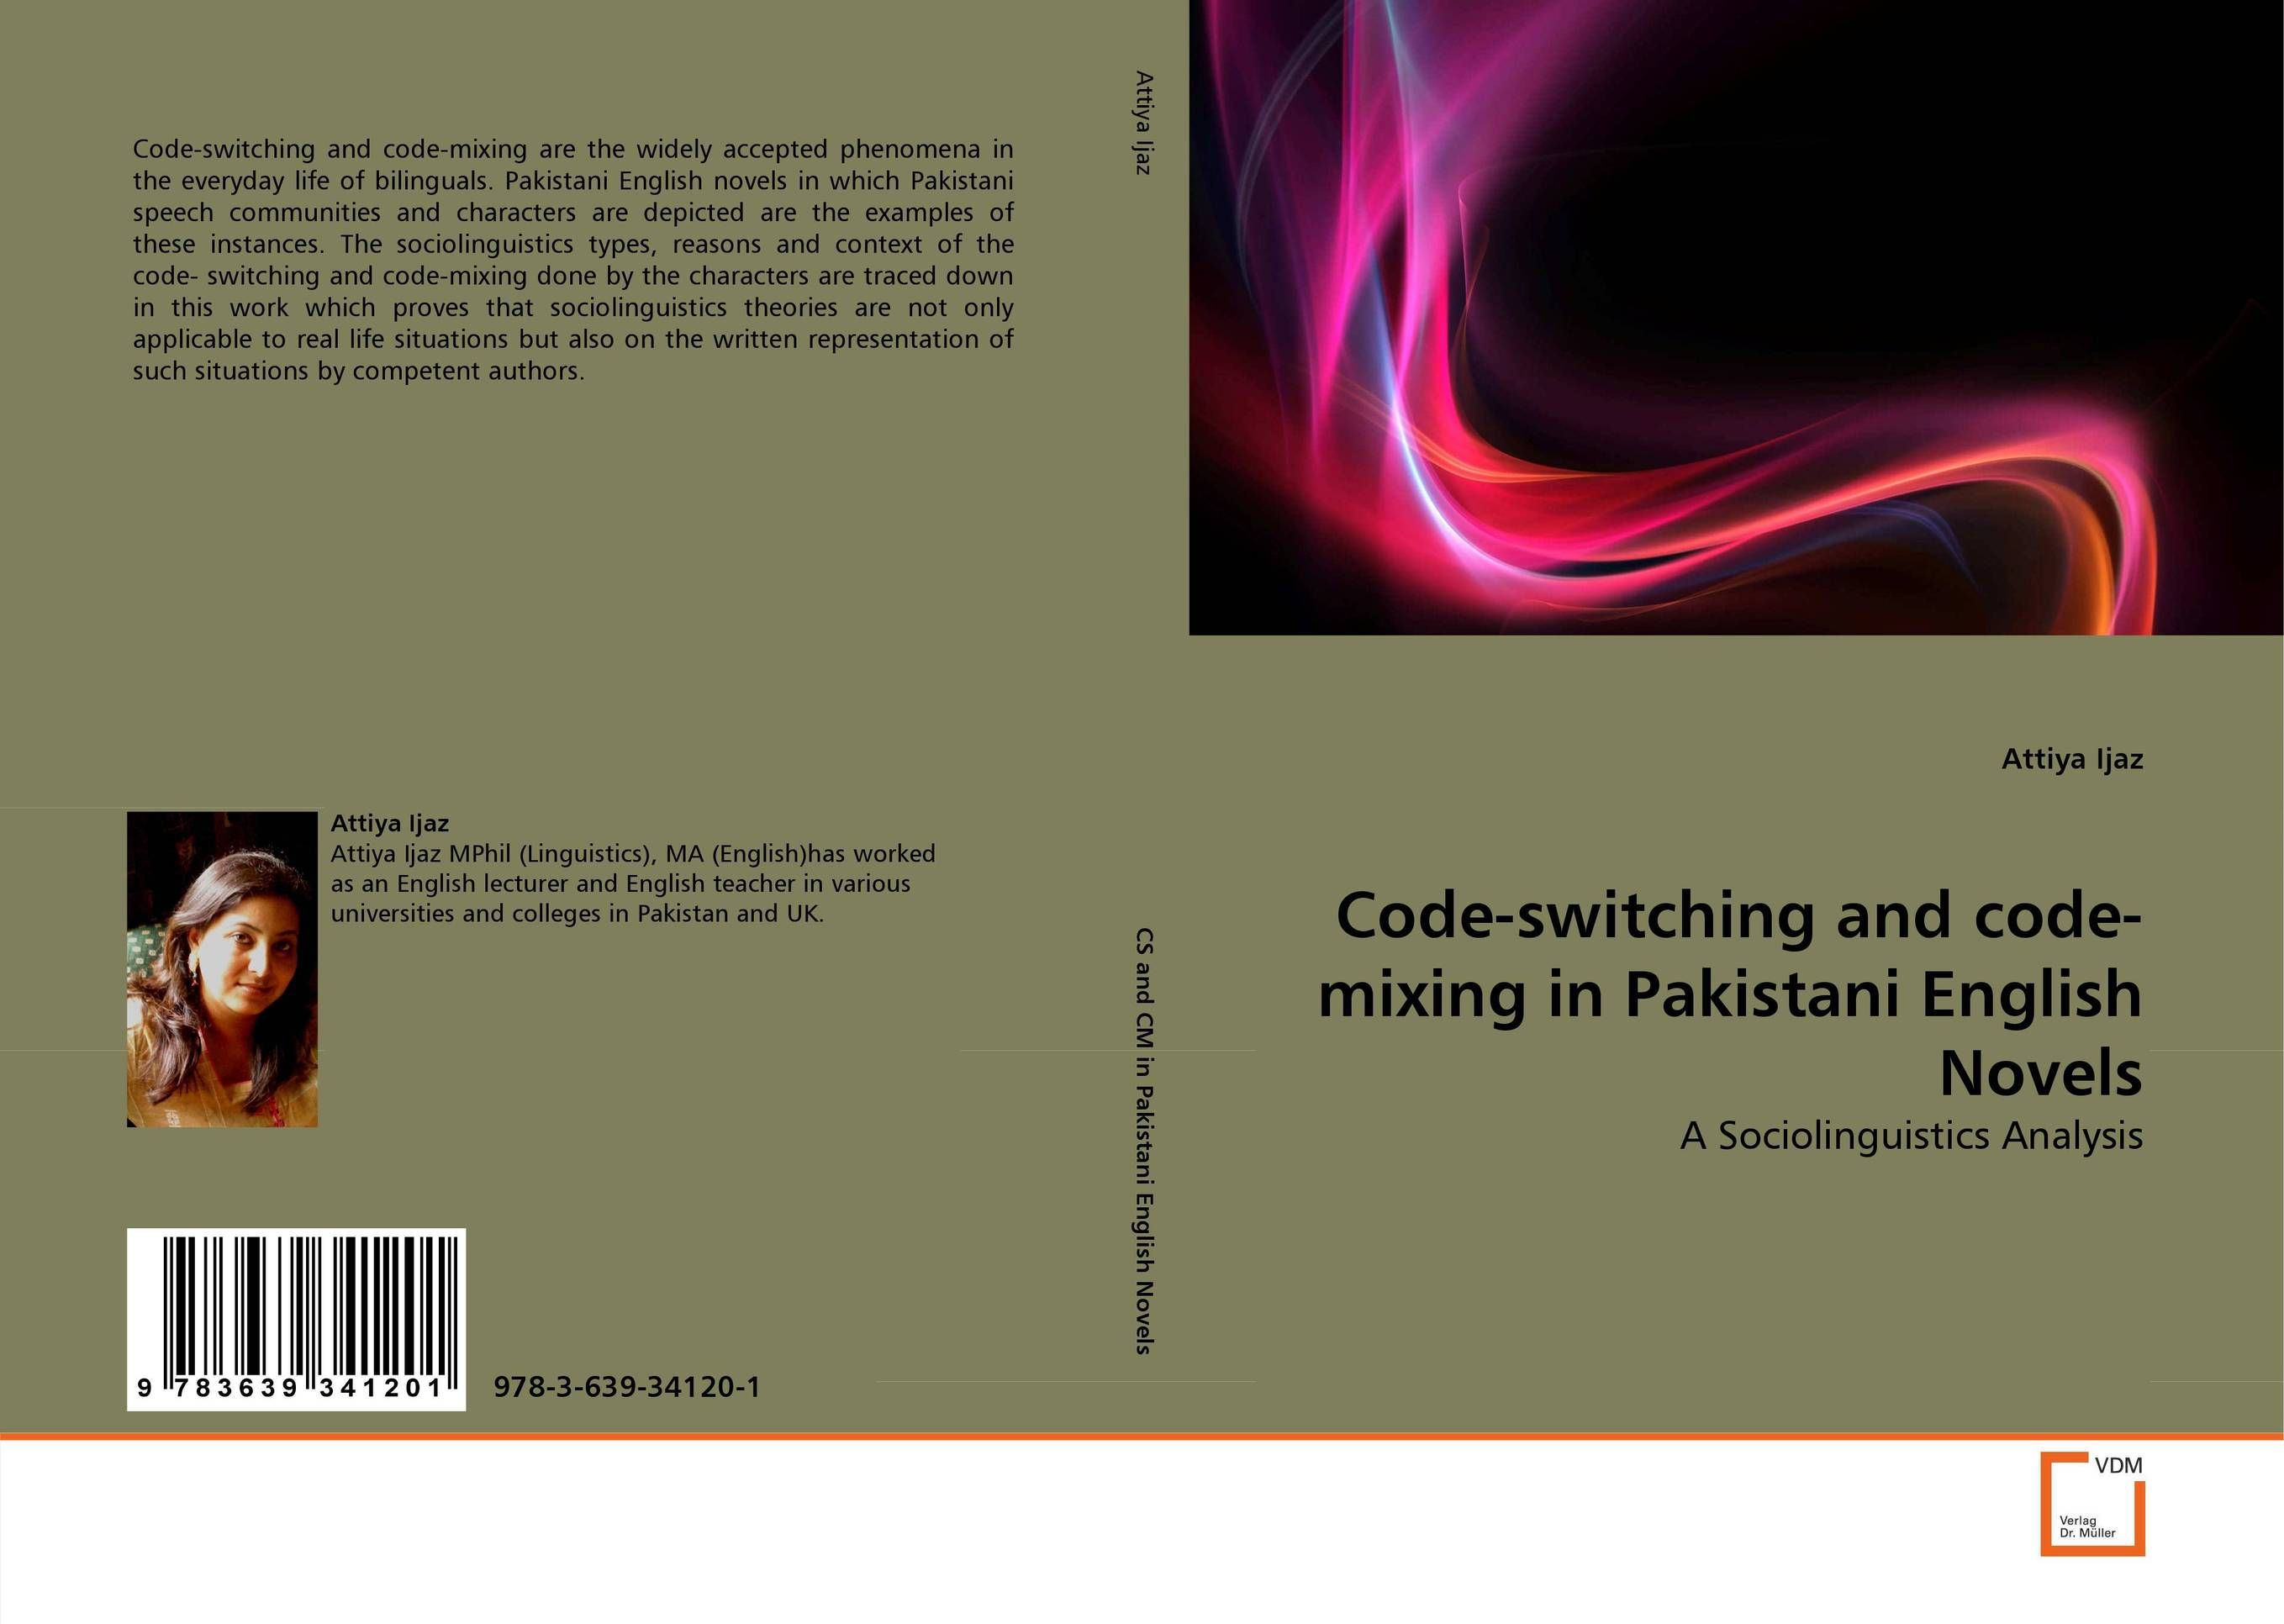 Code-switching and code-mixing in Pakistani English Novels fluids mixing and displacement in inclined geometries